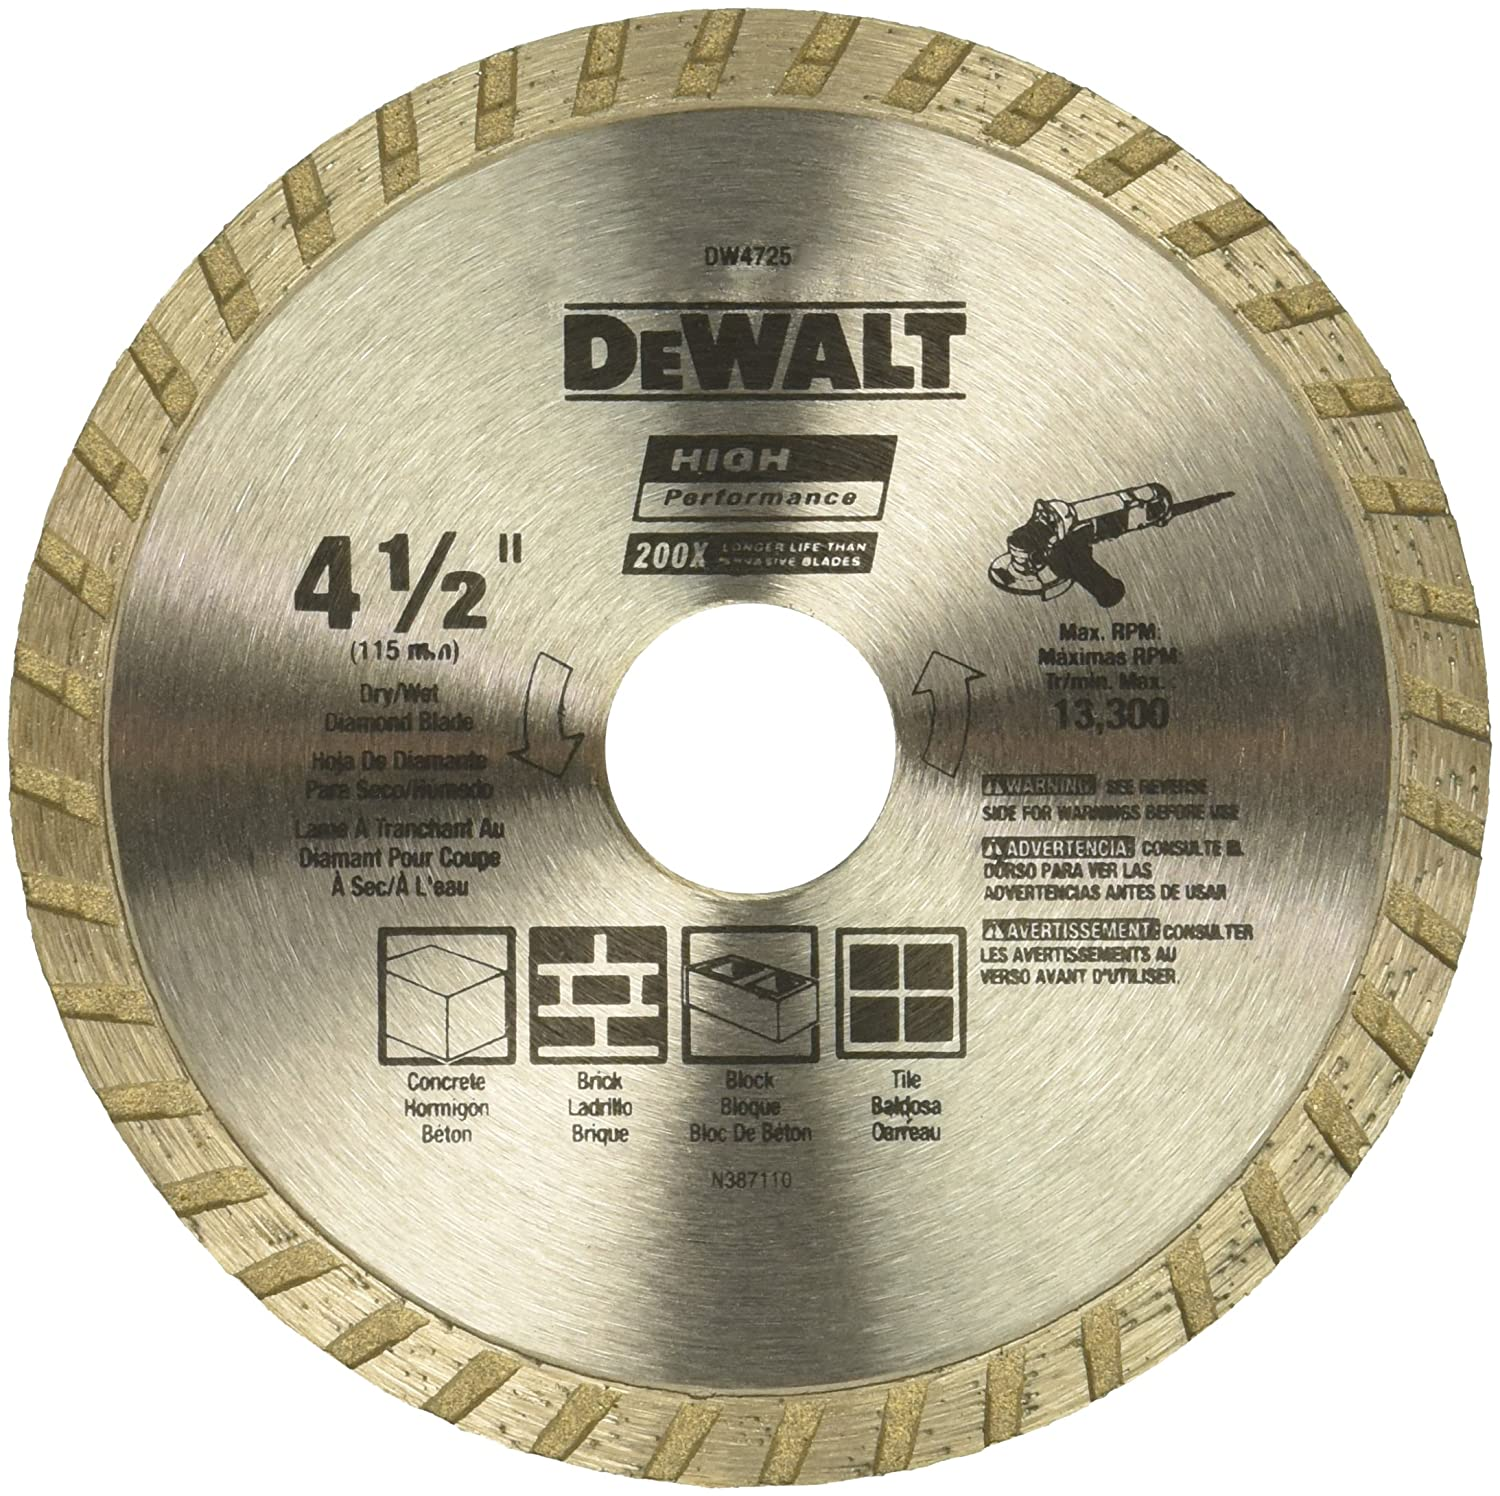 DEWALT DW4725 High Performance 4-1/2-Inch Dry Cutting Continuous Rim Diamond Saw Blade with 7/8-Inch Arbor for Masonry